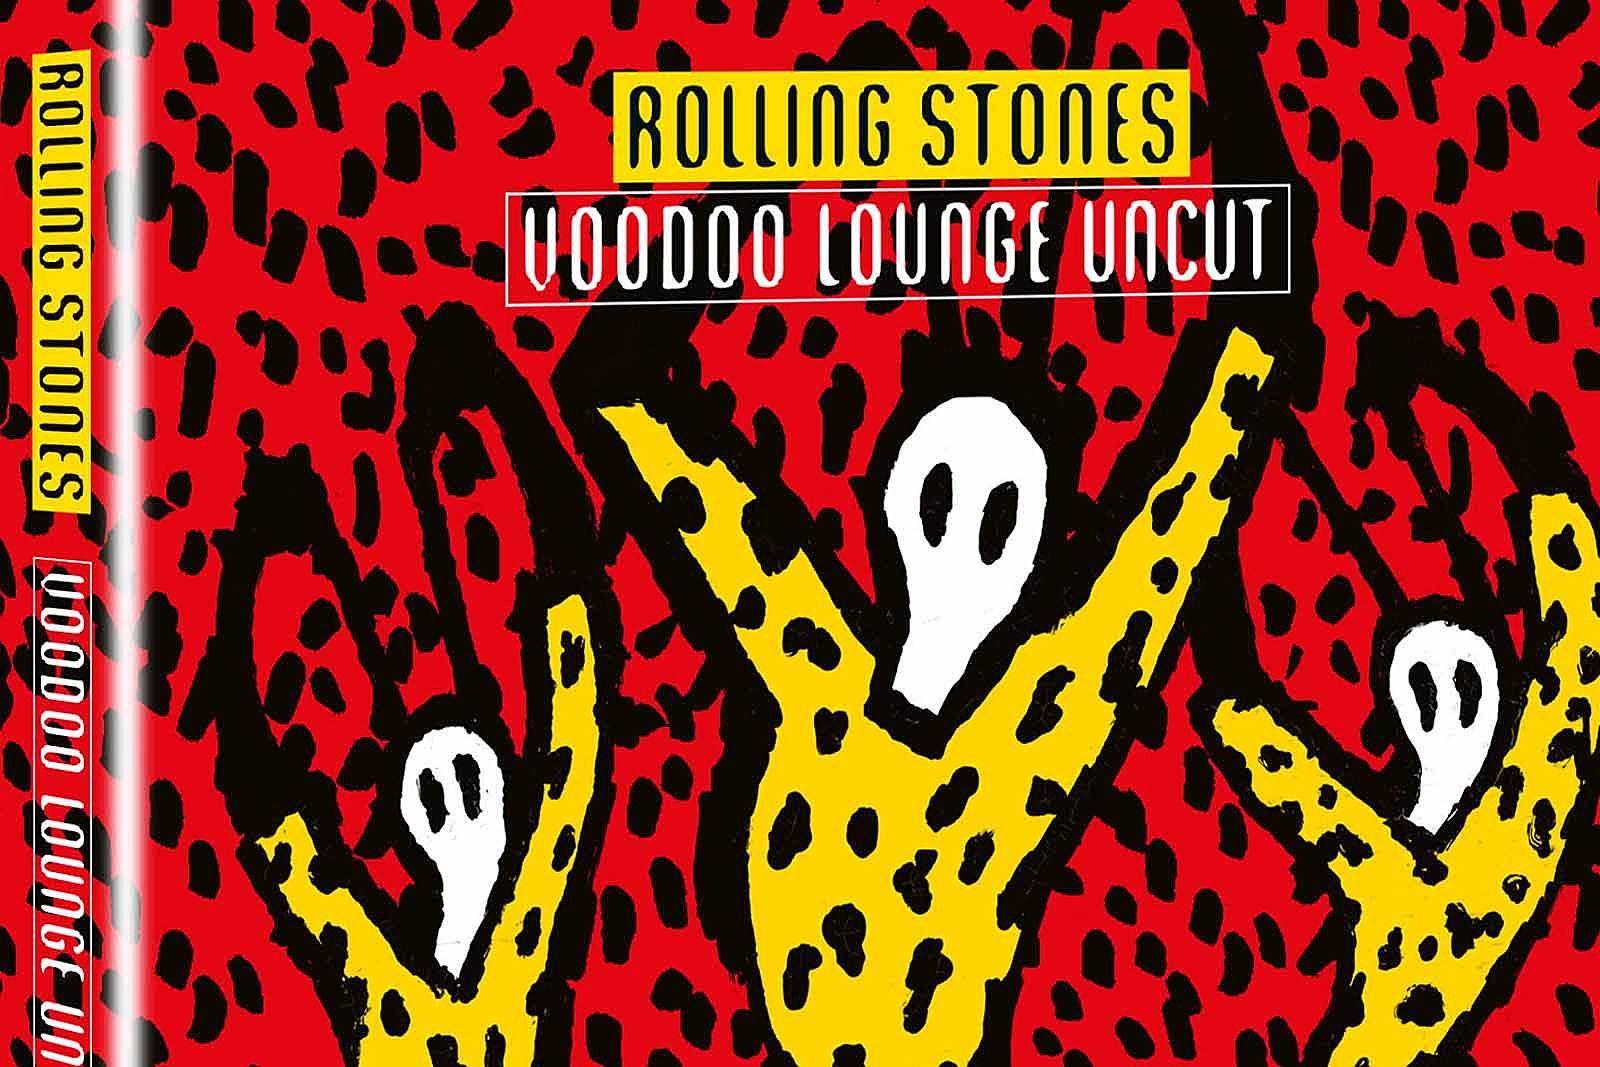 The Rolling Stones: Truth & Lies